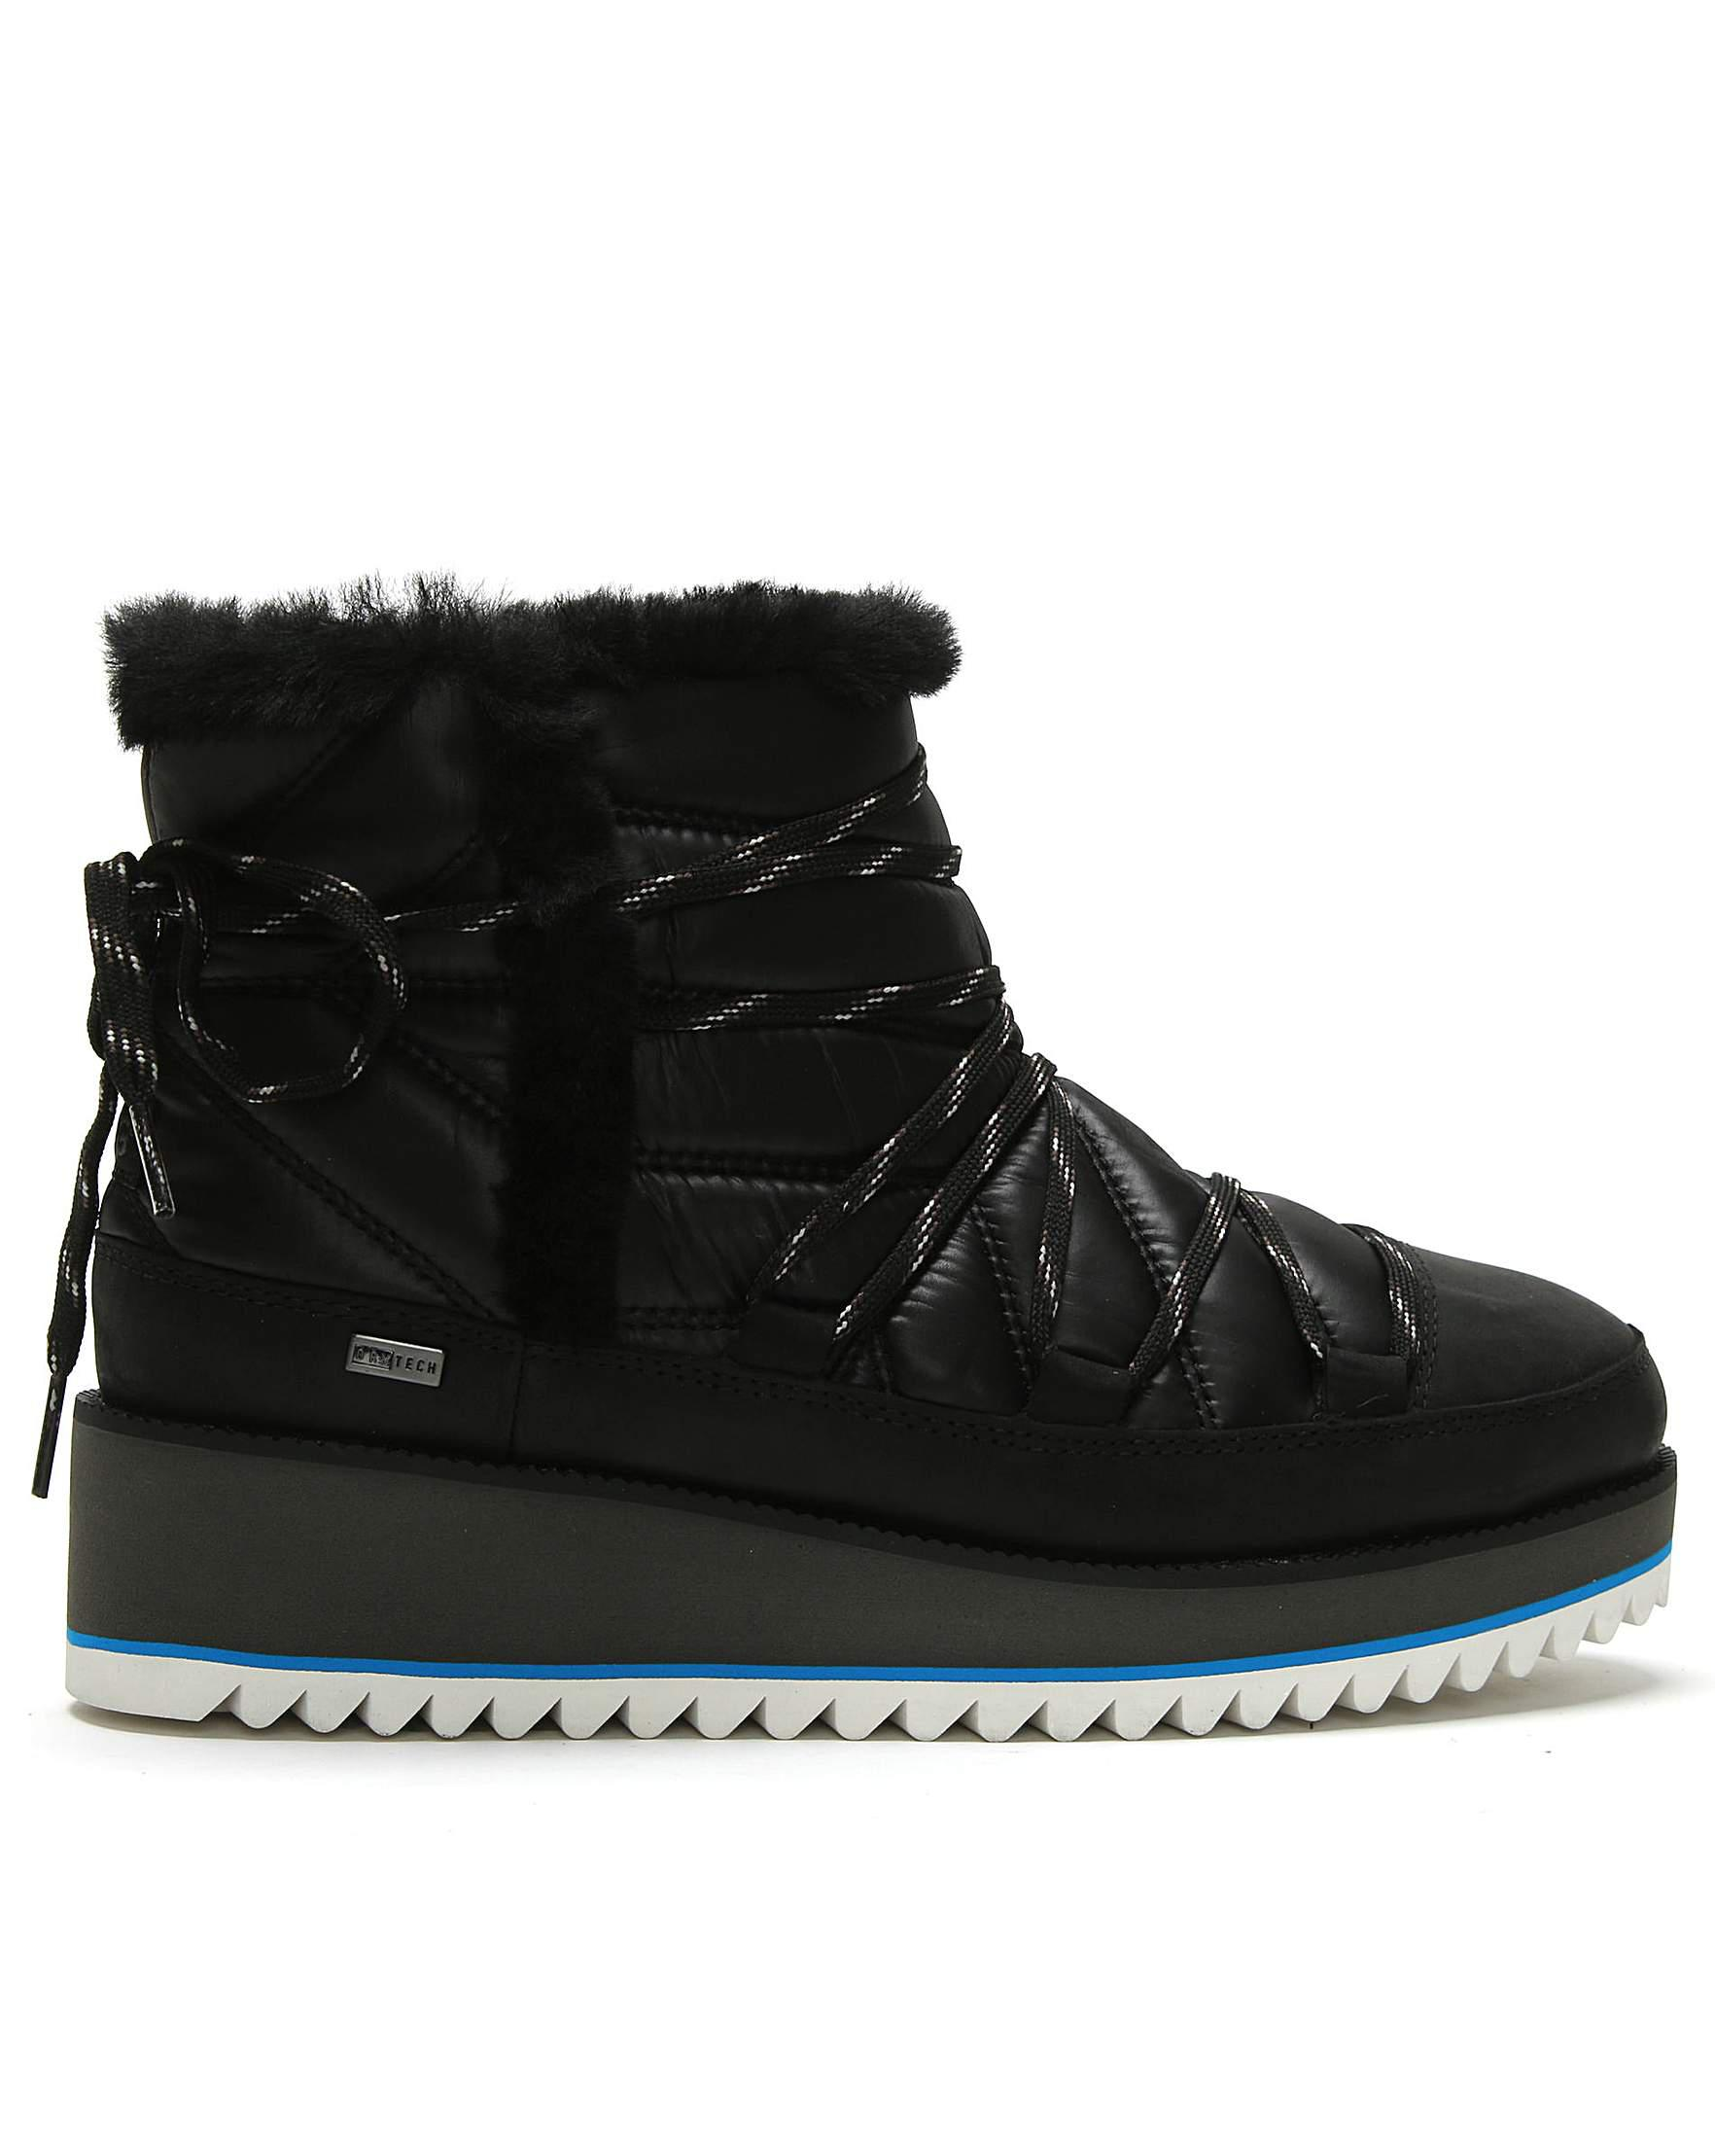 4ba1ce894cc UGG Cayden Nylon Ankle Boots in Black - Lyst